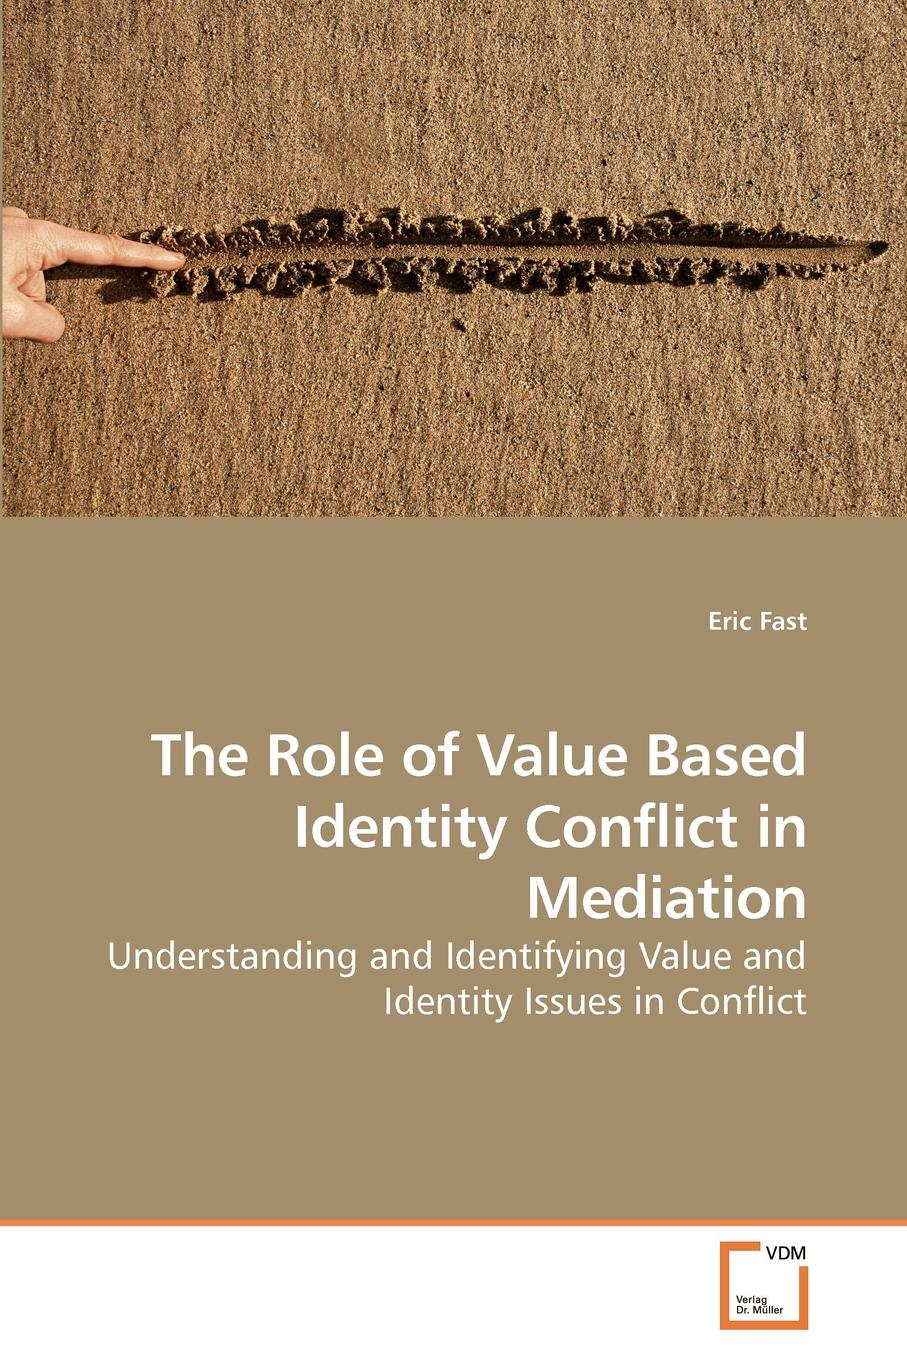 Eric Fast The Role of Value Based Identity Conflict in Mediation guanglei hong causality in a social world moderation mediation and spill over